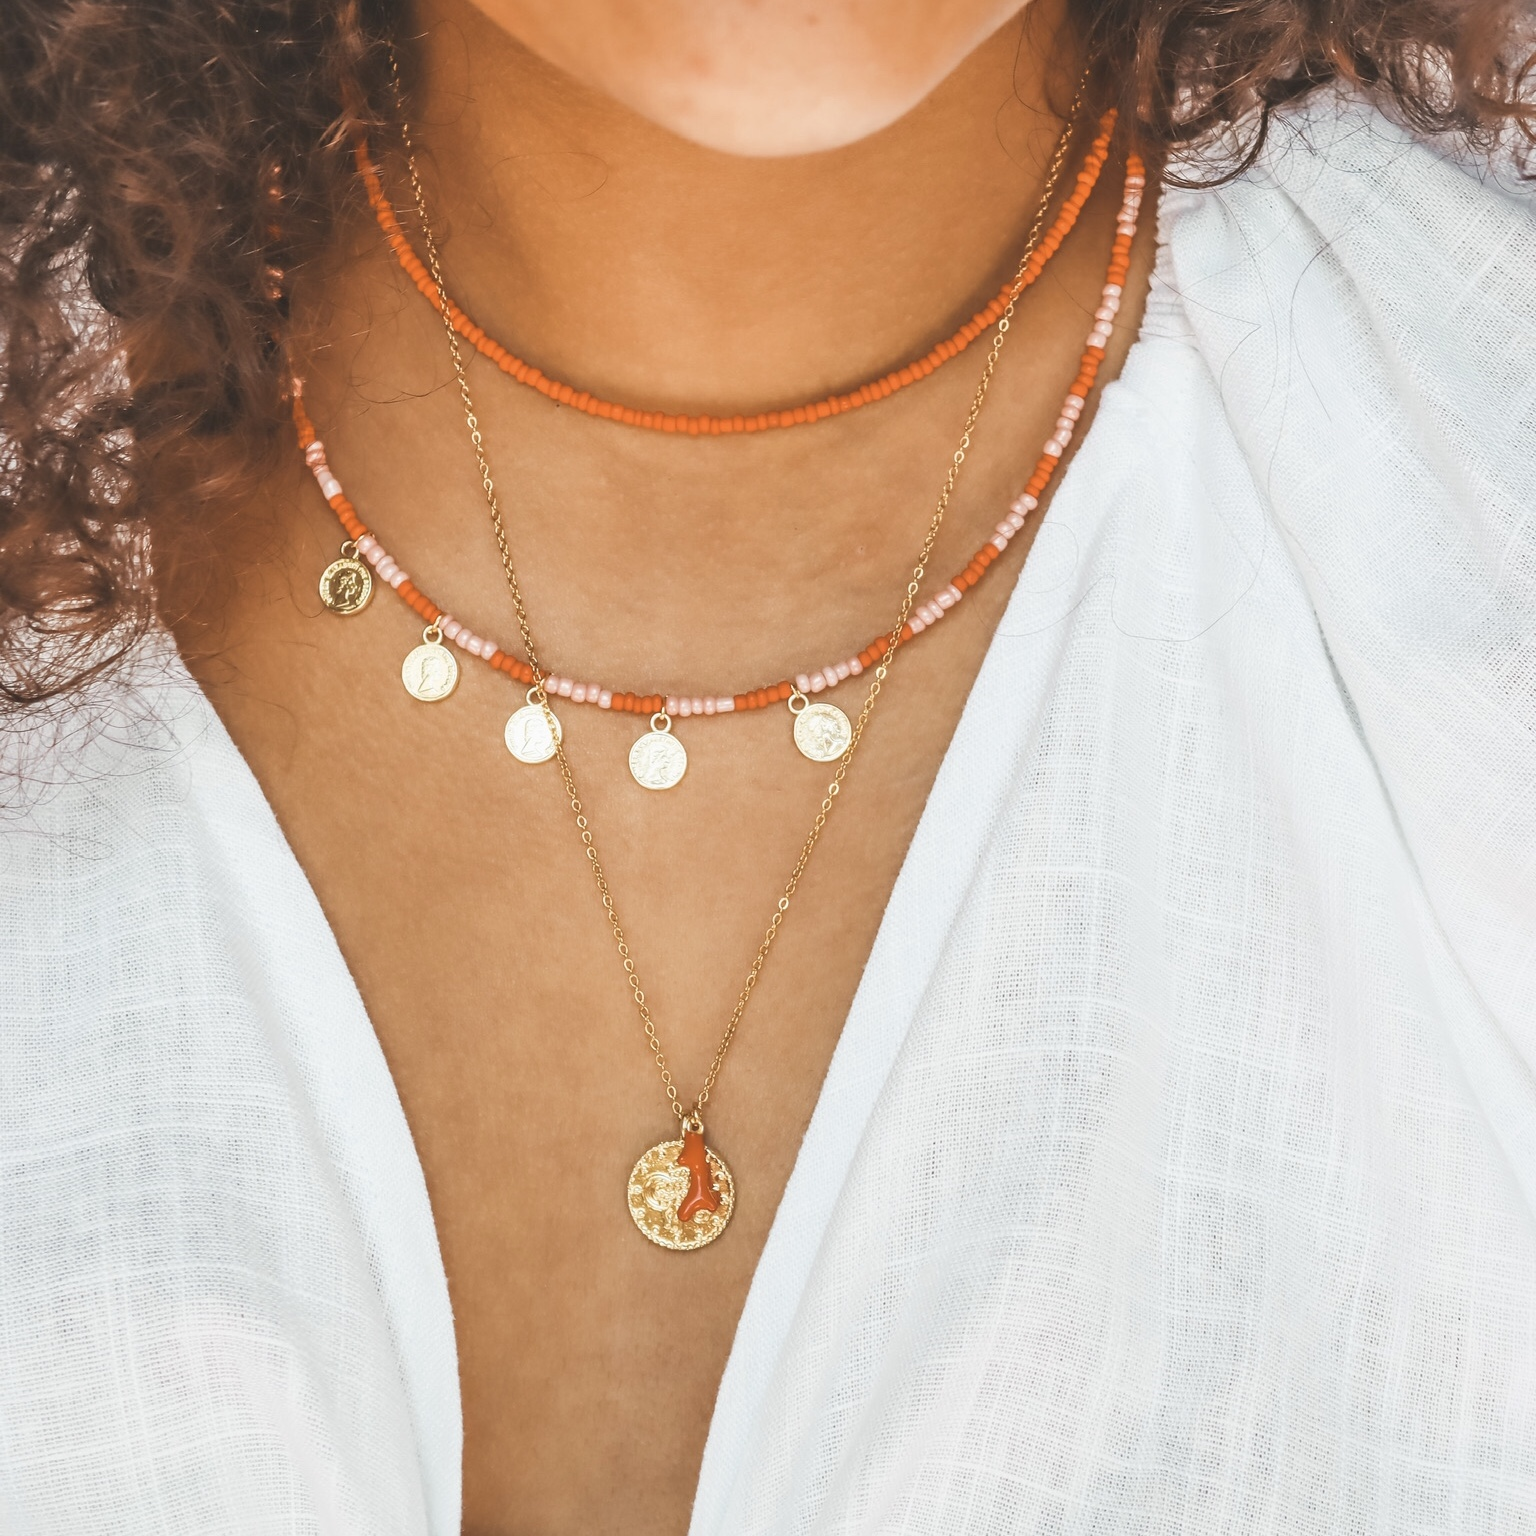 Fine jewelry: coin coral necklace